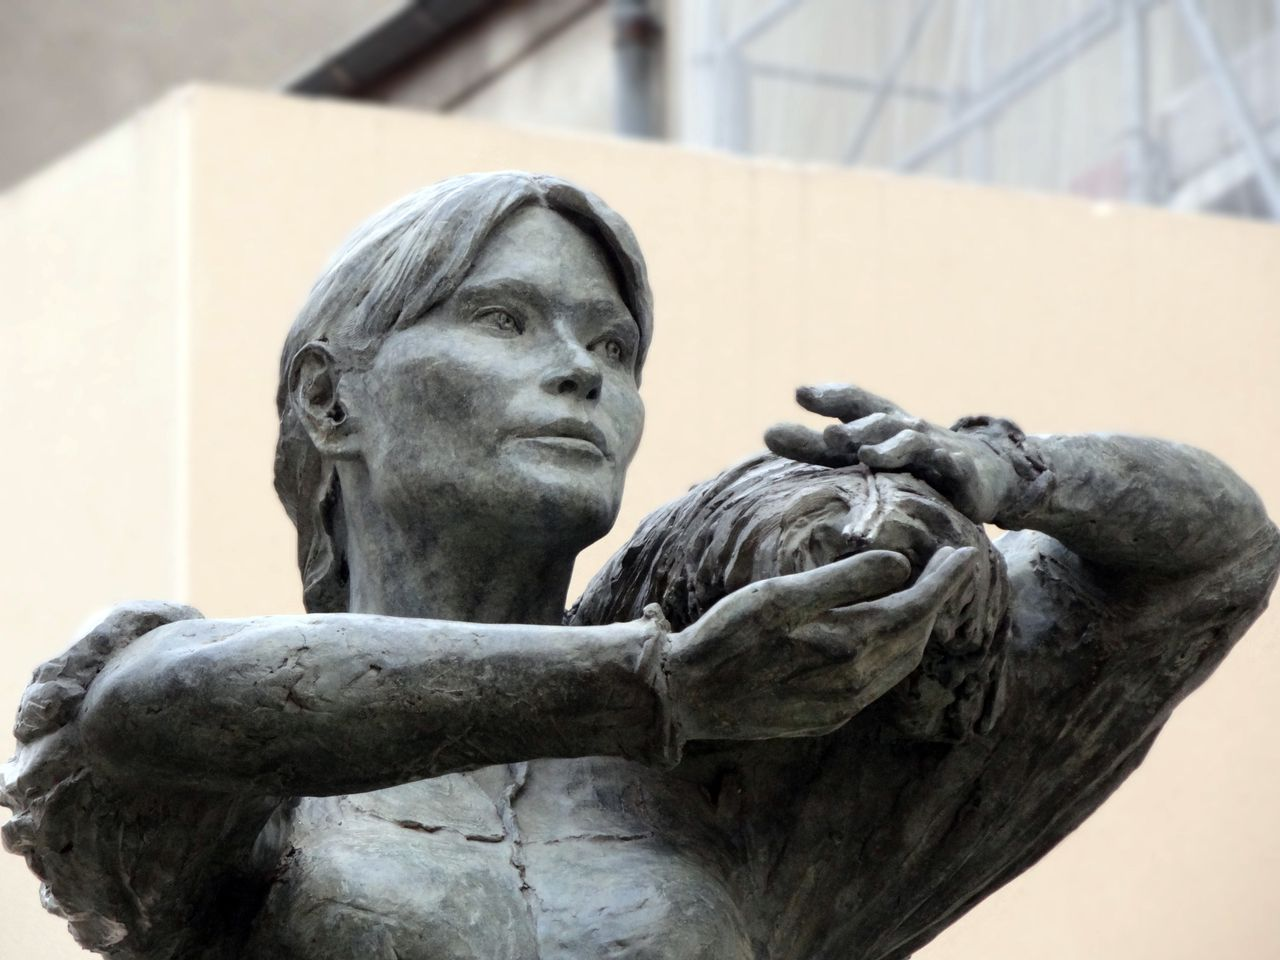 """A handout photo released by the Ville de Nogent-sur-Marne in France shows the 'Valnurese' sculpture by French artist Elisabeth Cibot as it is erected in Nogent-sur-Marne on July 31, 2012. The sculpture, an effigy of former French first lady Carla Bruni-Sarkozy dressed in workwear is dedicated to the Italian women labourers working in the town since 1860. AFP PHOTO/HO/Ville de Nogent-sur-Marne ---RESTRICTED TO EDITORIAL USE - MANDATORY CREDIT """"AFP PHOTO / HO / Ville de Nogent-sur-Marne"""" - NO MARKETING NO ADVERTISING CAMPAIGNS - DISTRIBUTED AS A SERVICE TO CLIENTS---"""